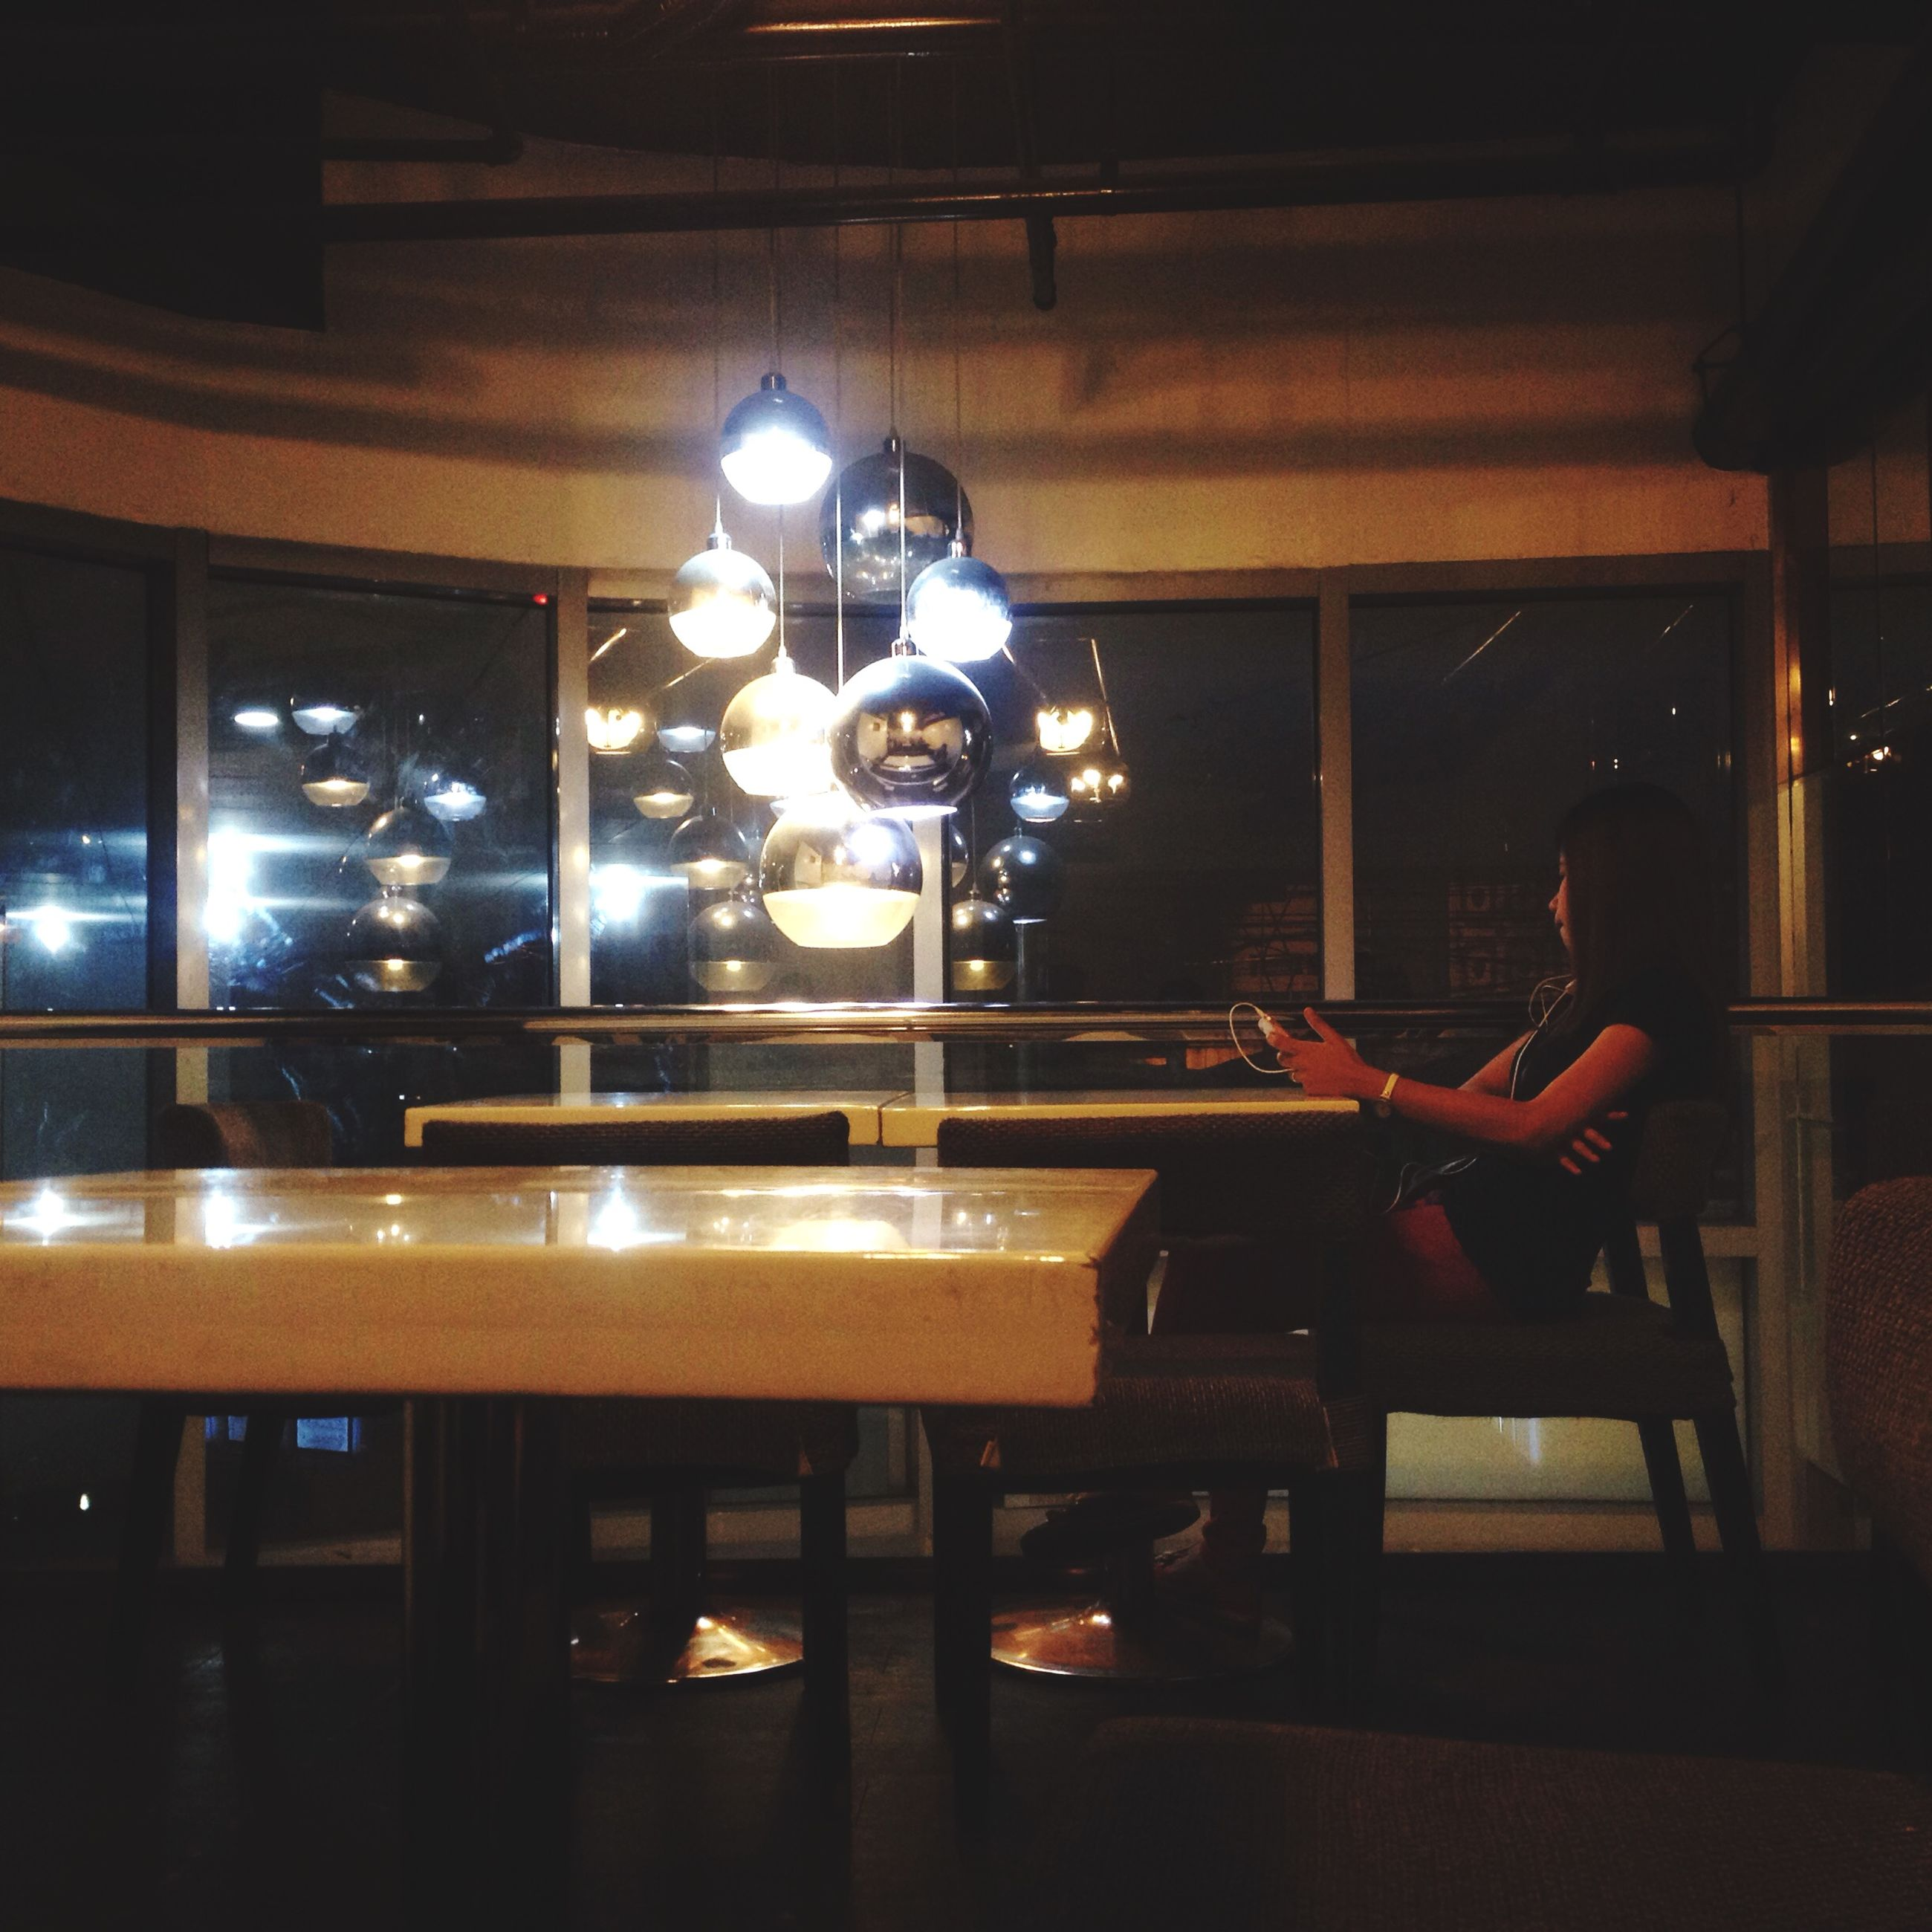 indoors, illuminated, lighting equipment, night, table, glass - material, window, electric lamp, reflection, electric light, built structure, home interior, restaurant, architecture, electricity, light bulb, transparent, hanging, luxury, dark